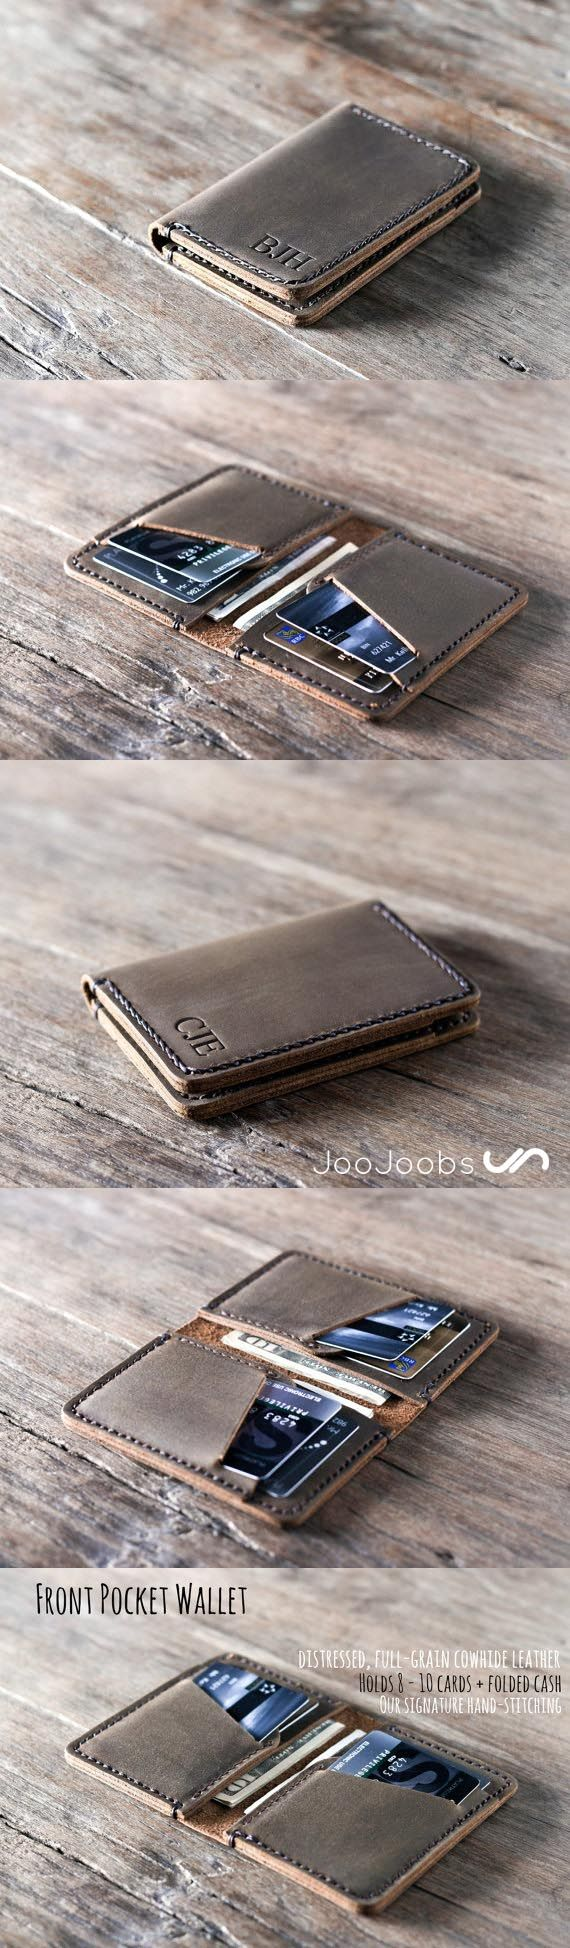 Minimalist Leather Wallet.  All JooJoobs wallets are handmade and hand-stitched. Come visit our Etsy shop and find the perfect wallet for your favorite someone.